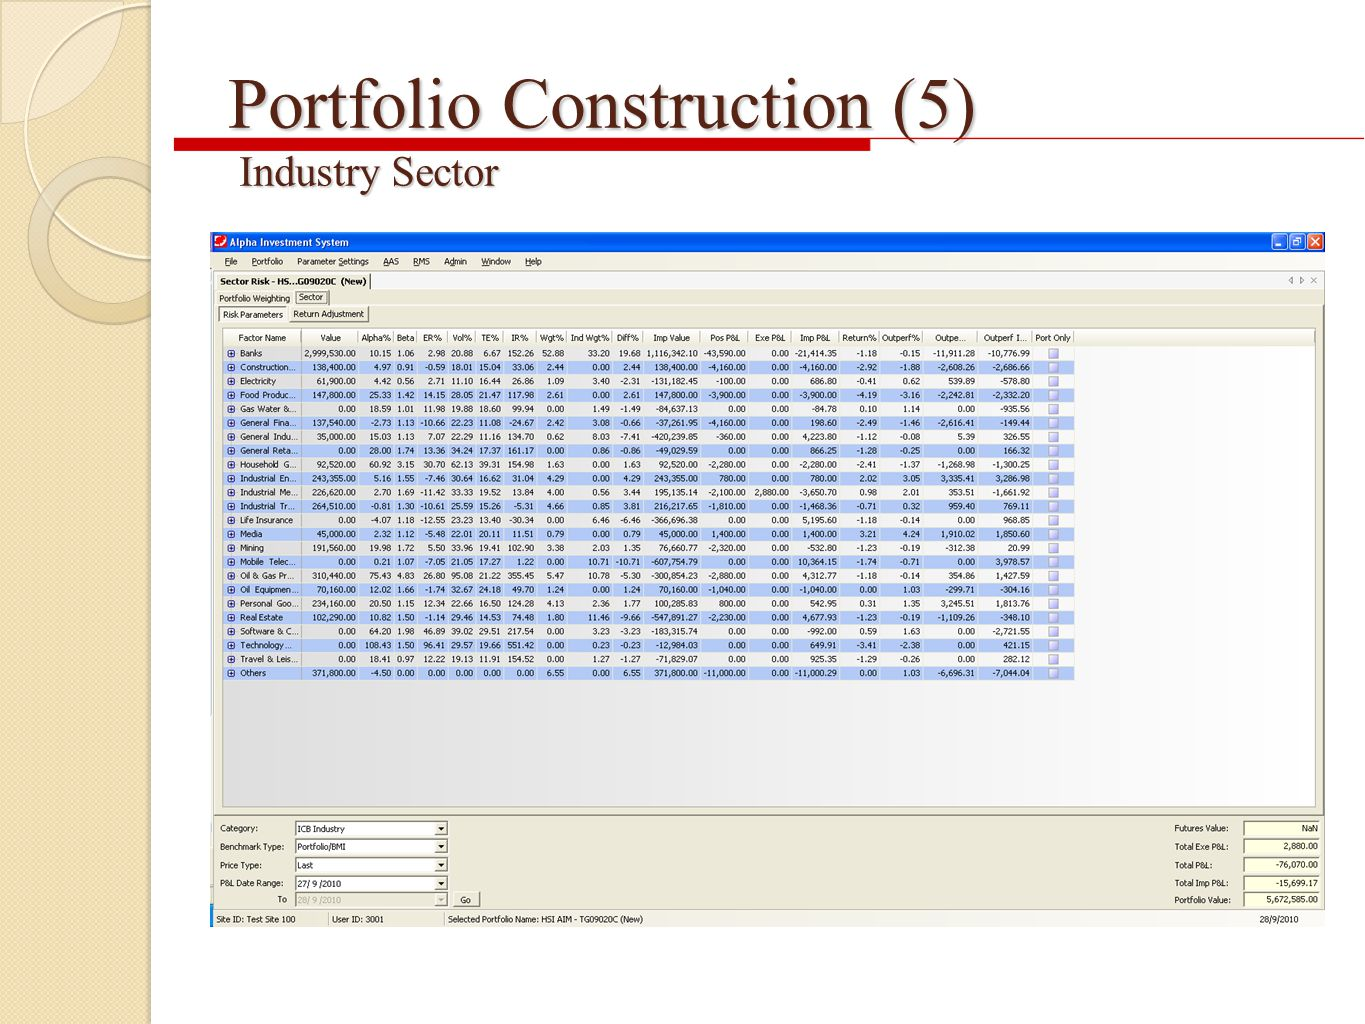 Portfolio Construction (5) Industry Sector